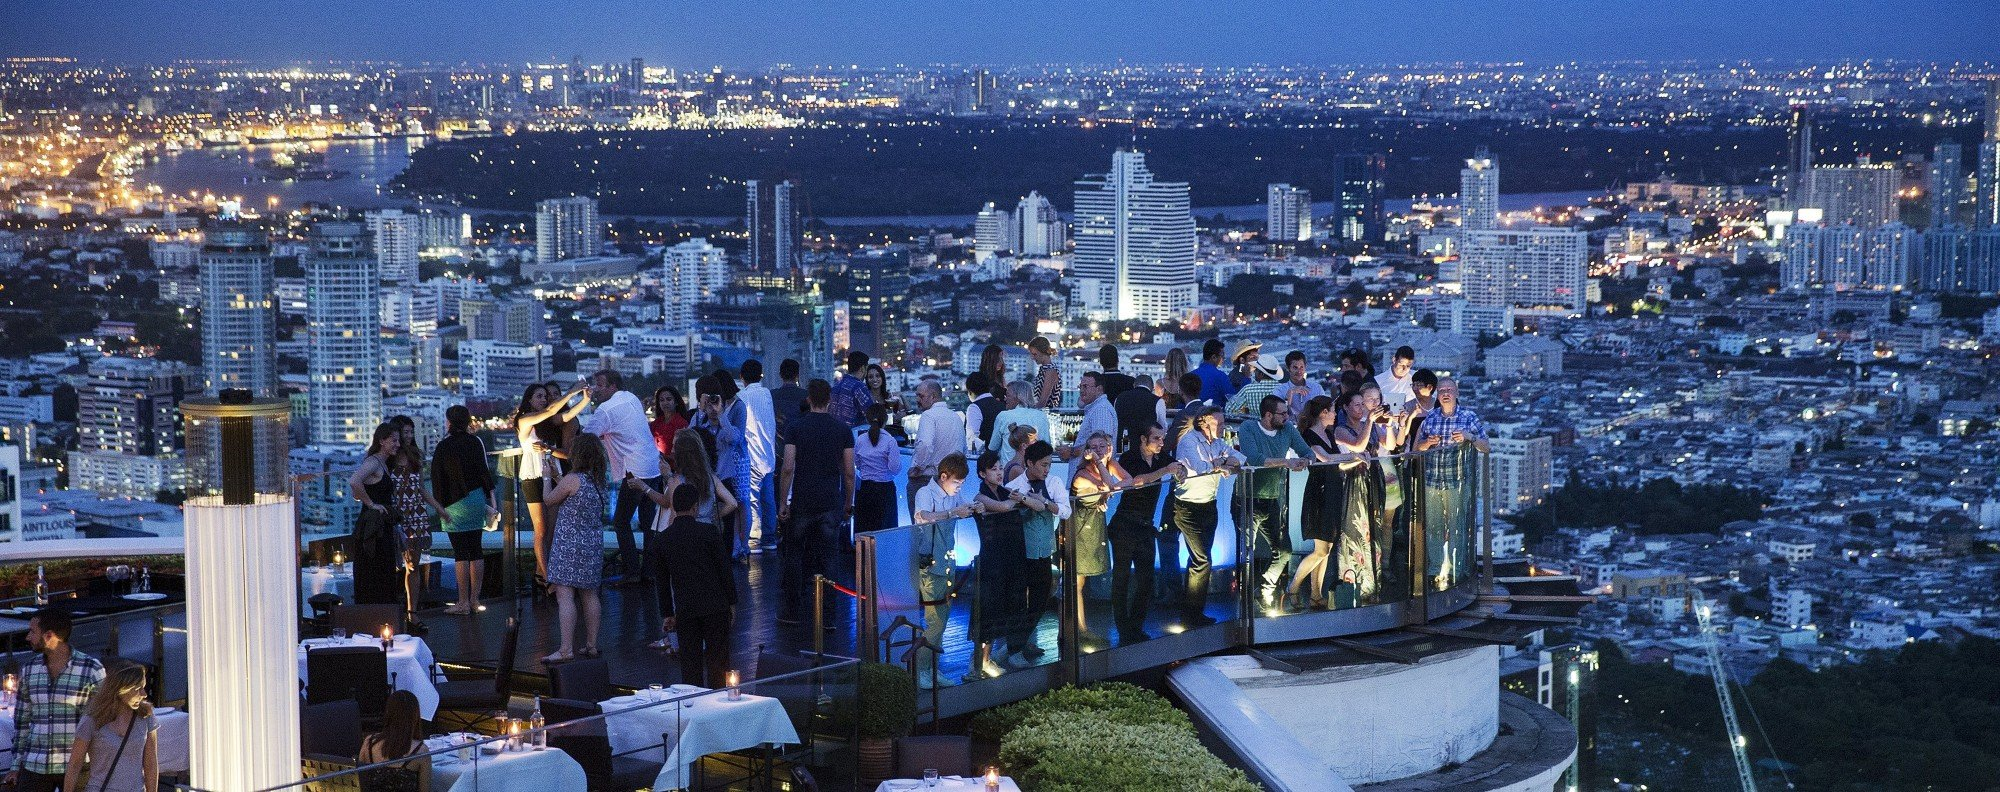 A rooftop bar in central Bangkok. Photo: Reuters